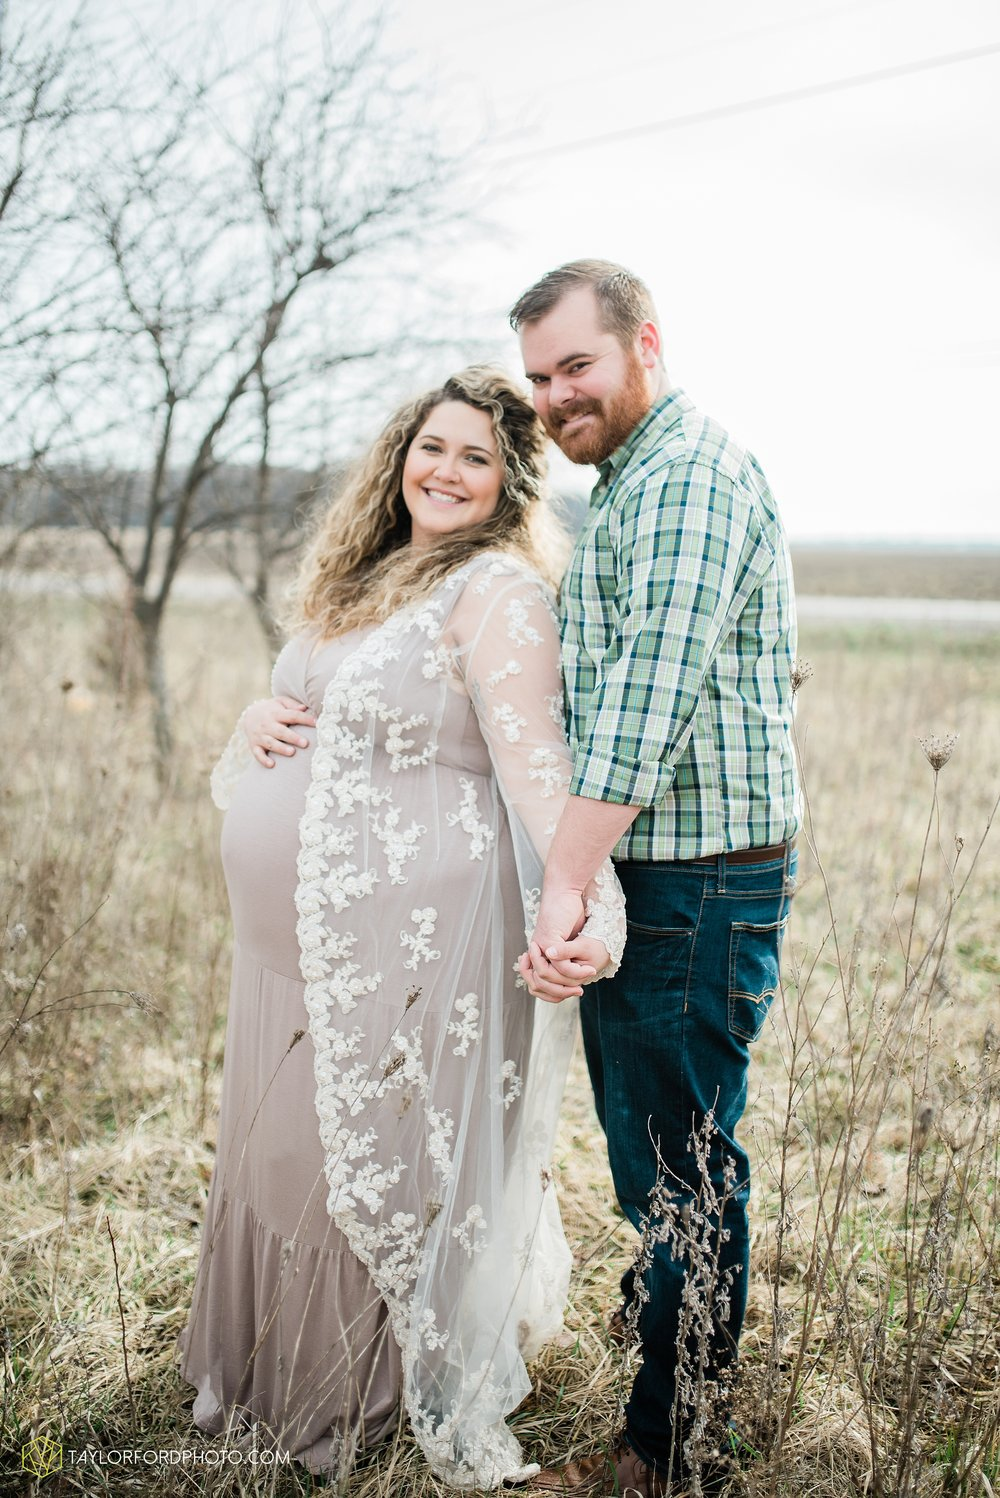 quincy-thompson-van-wert-ohio-maternity-photographer-indiana-Taylor-Ford-Photography_6625.jpg